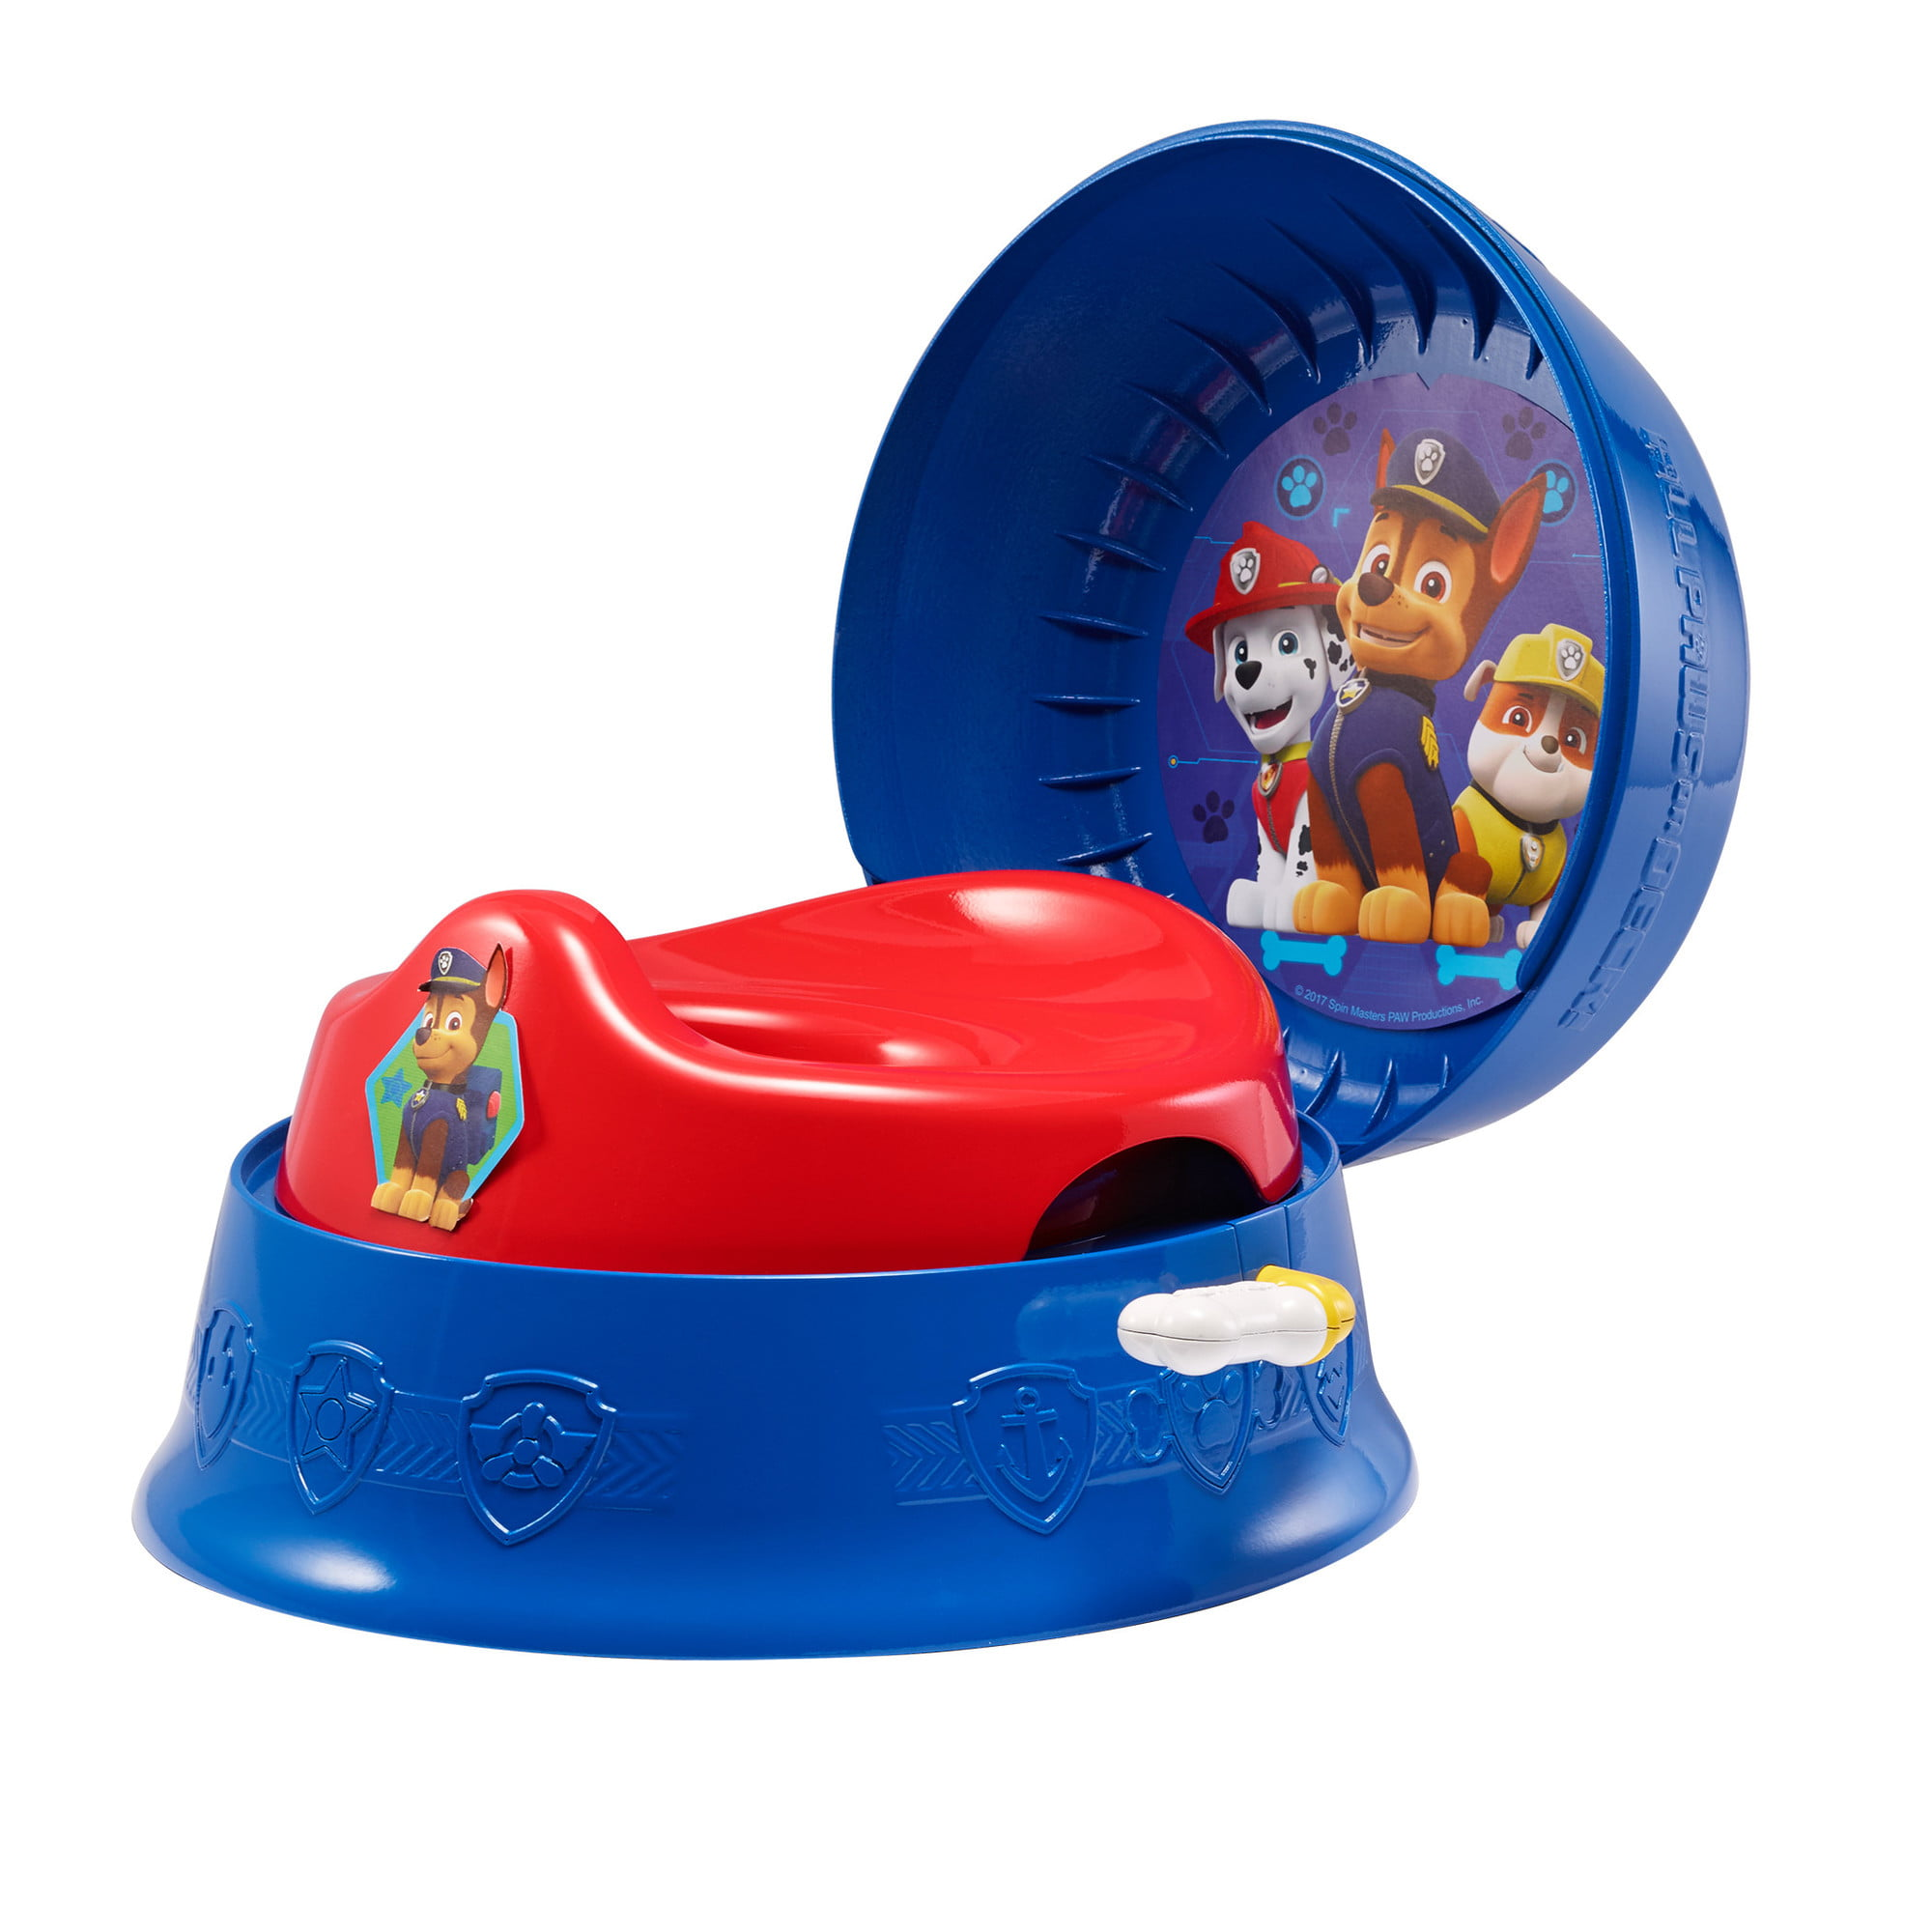 Nickelodeon Paw Patrol 3-in-1 Potty Training Toilet, Toddler Toilet Training Set by TOMY